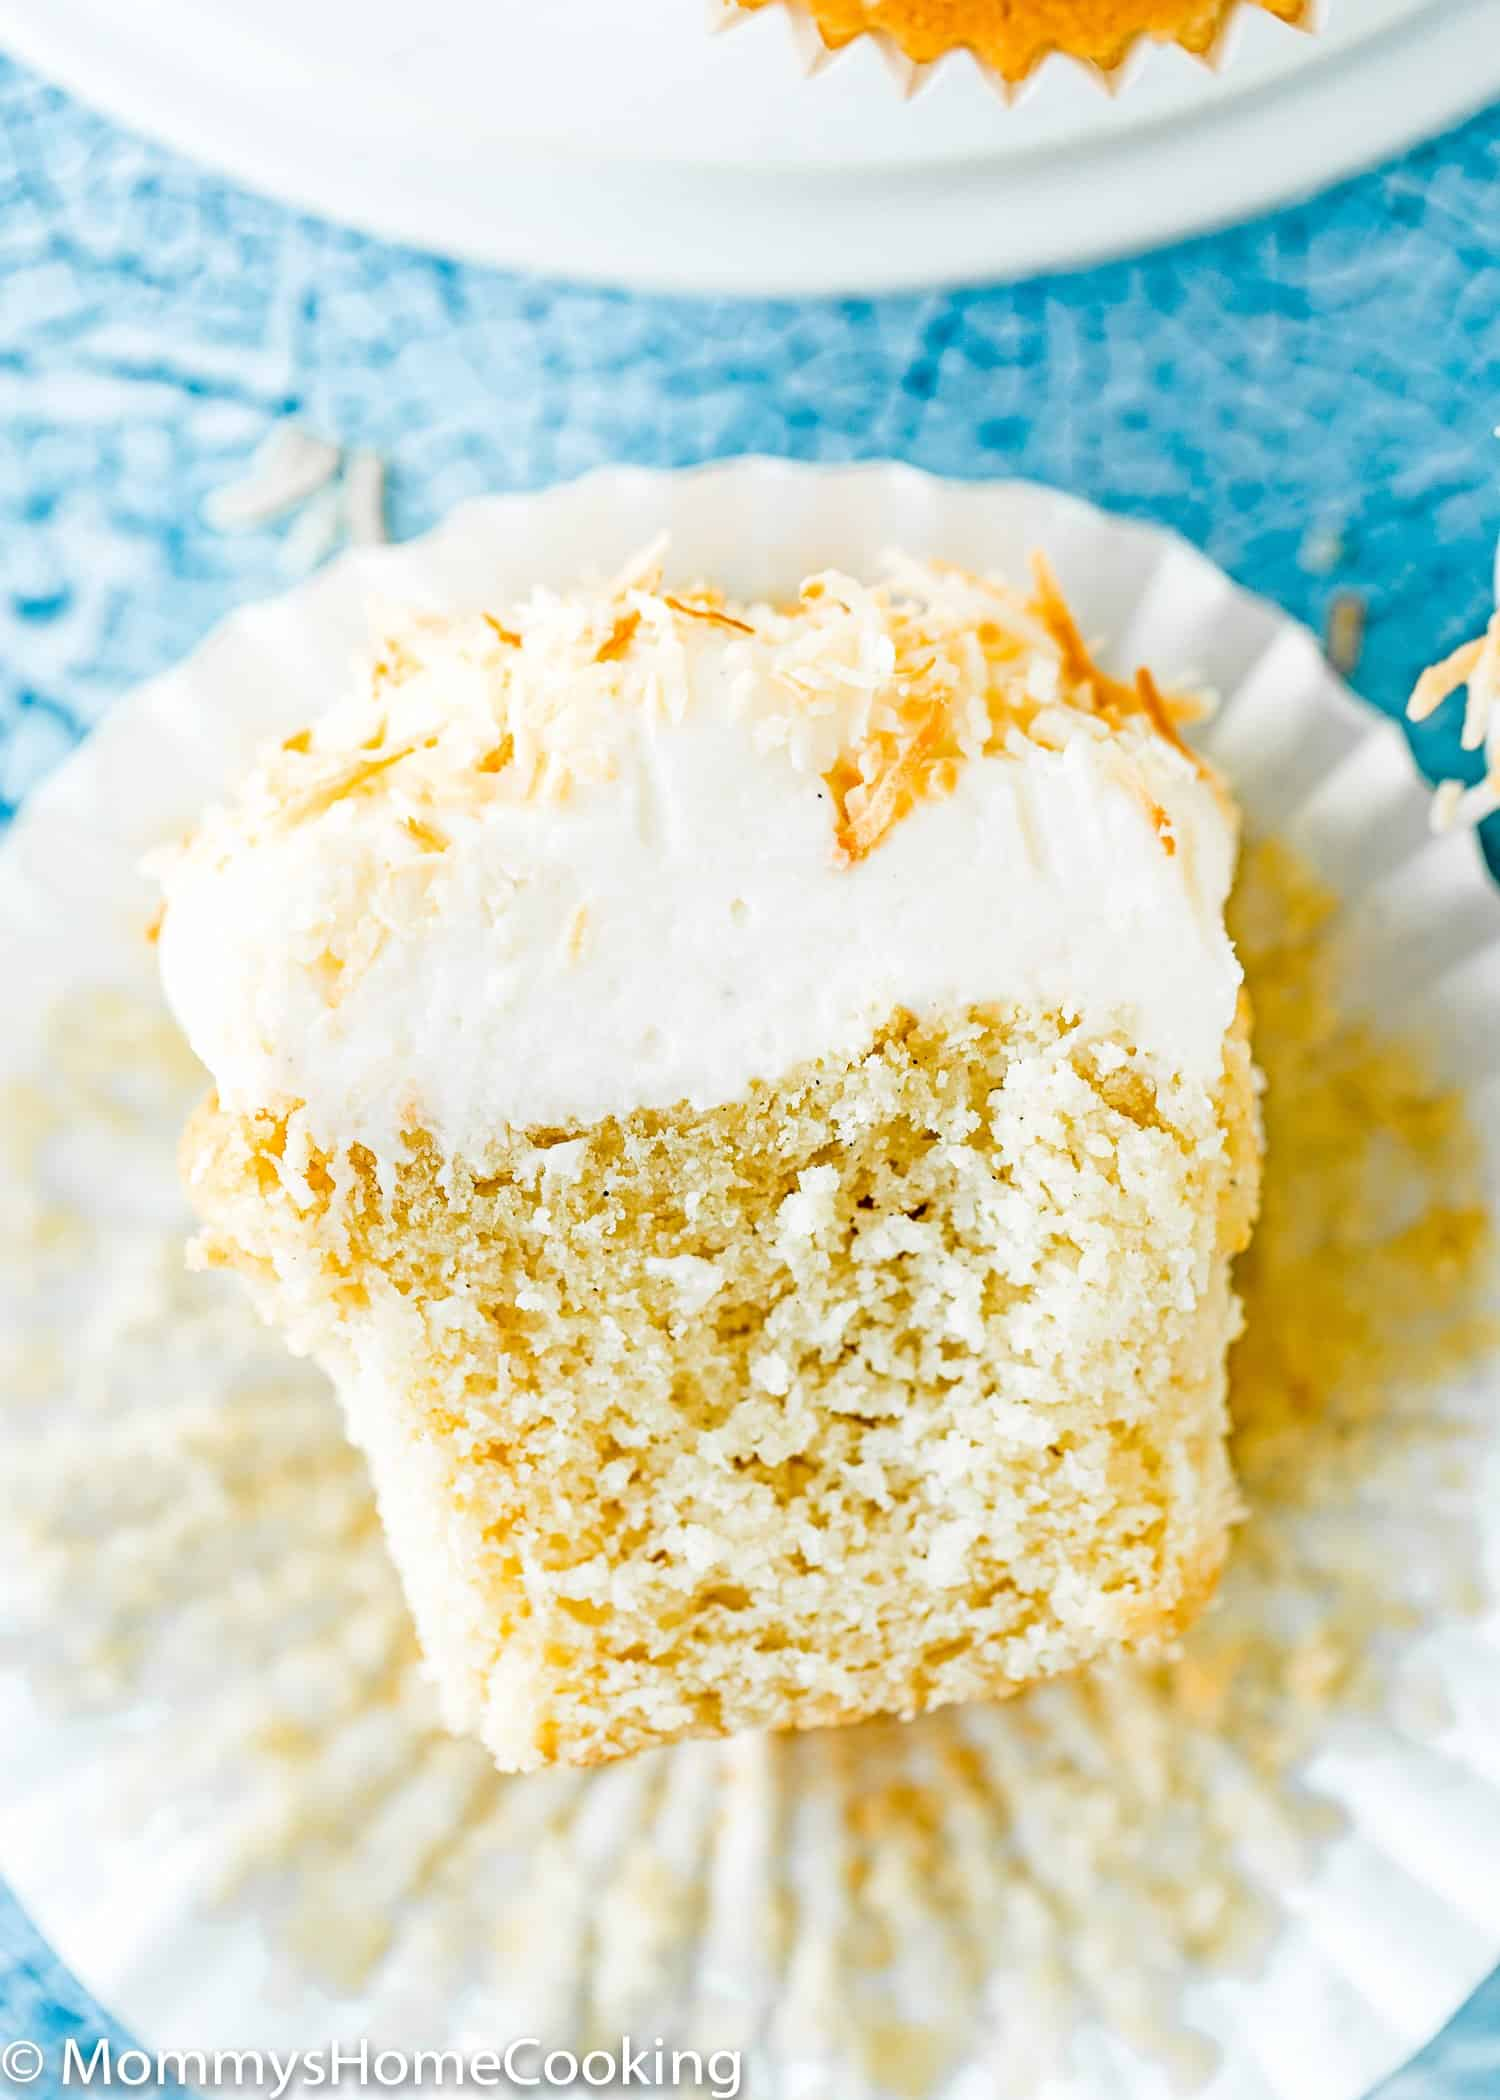 Eggless Coconut Cupcake cut open showing the fluffy inside texture